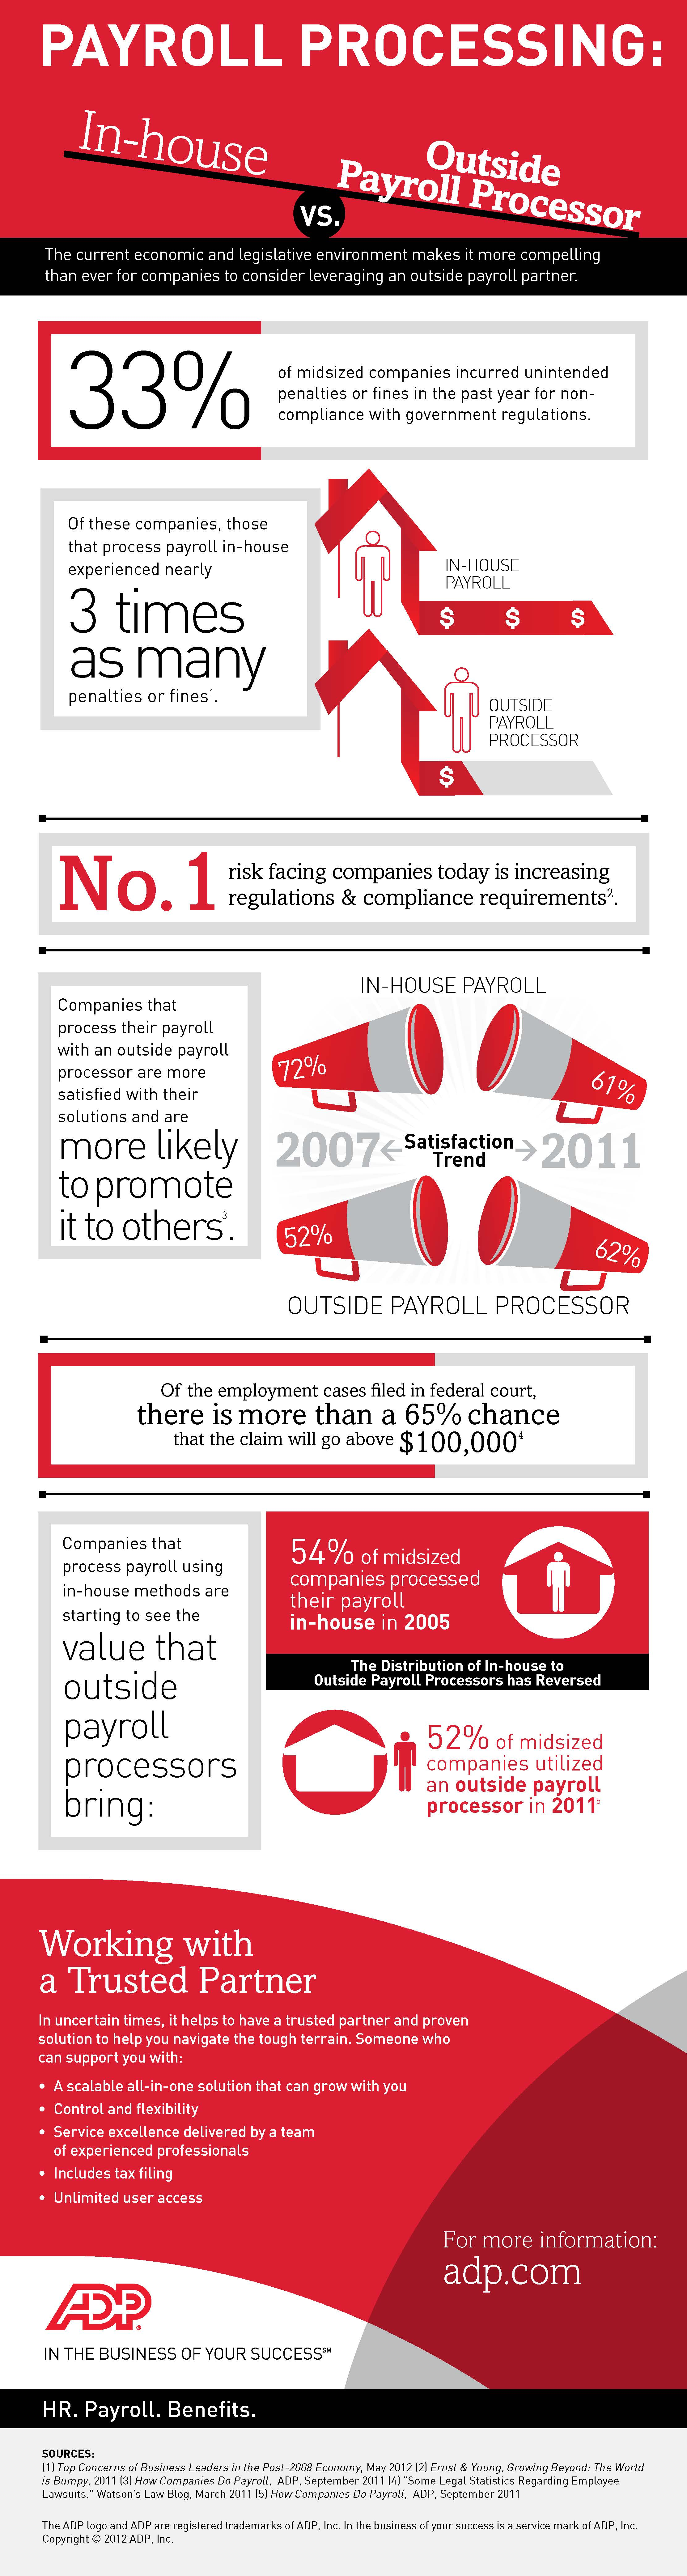 In-house Payroll Payroll processor infographic